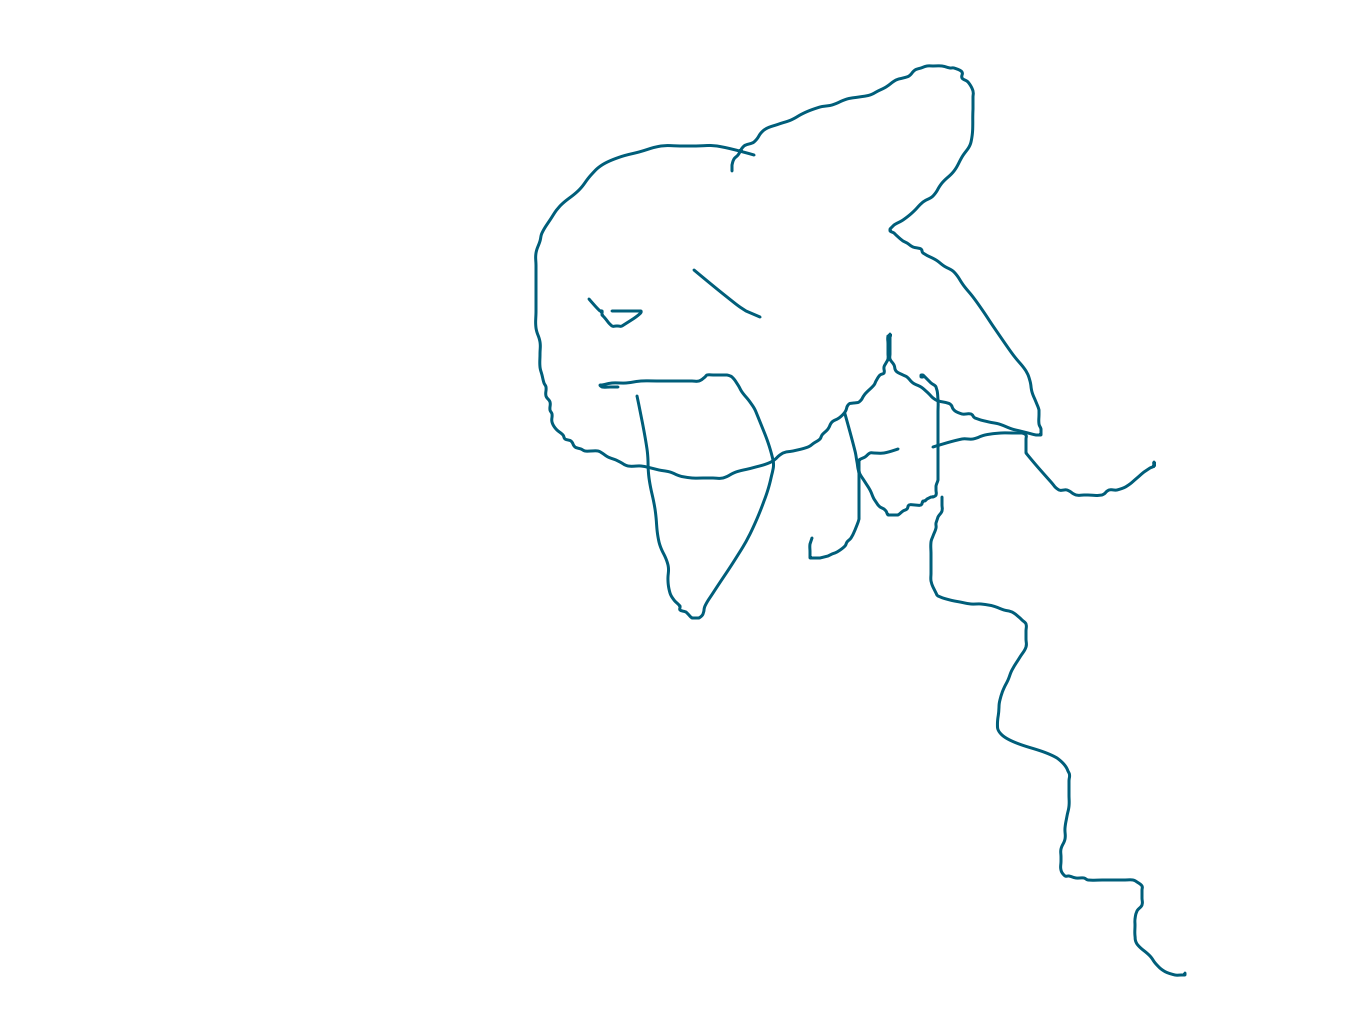 Drawing forum. Draw a fish wearing